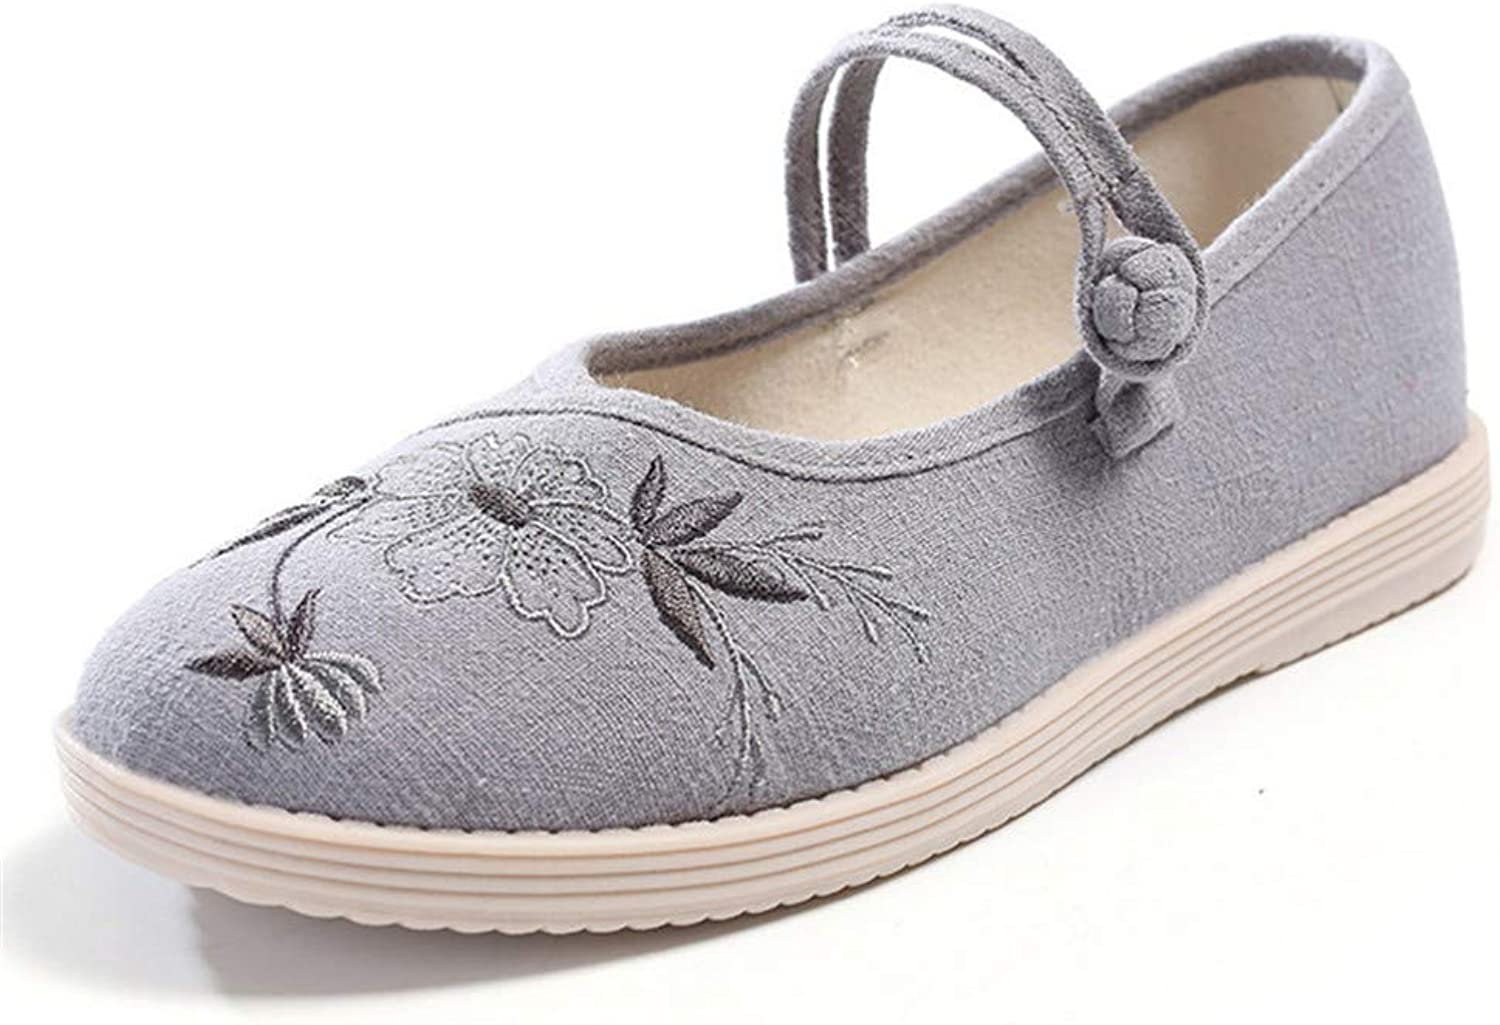 Cloth shoes, Embroidered shoes, Cotton and Hemp Dancing shoes, Women's shoes-YU&Xin